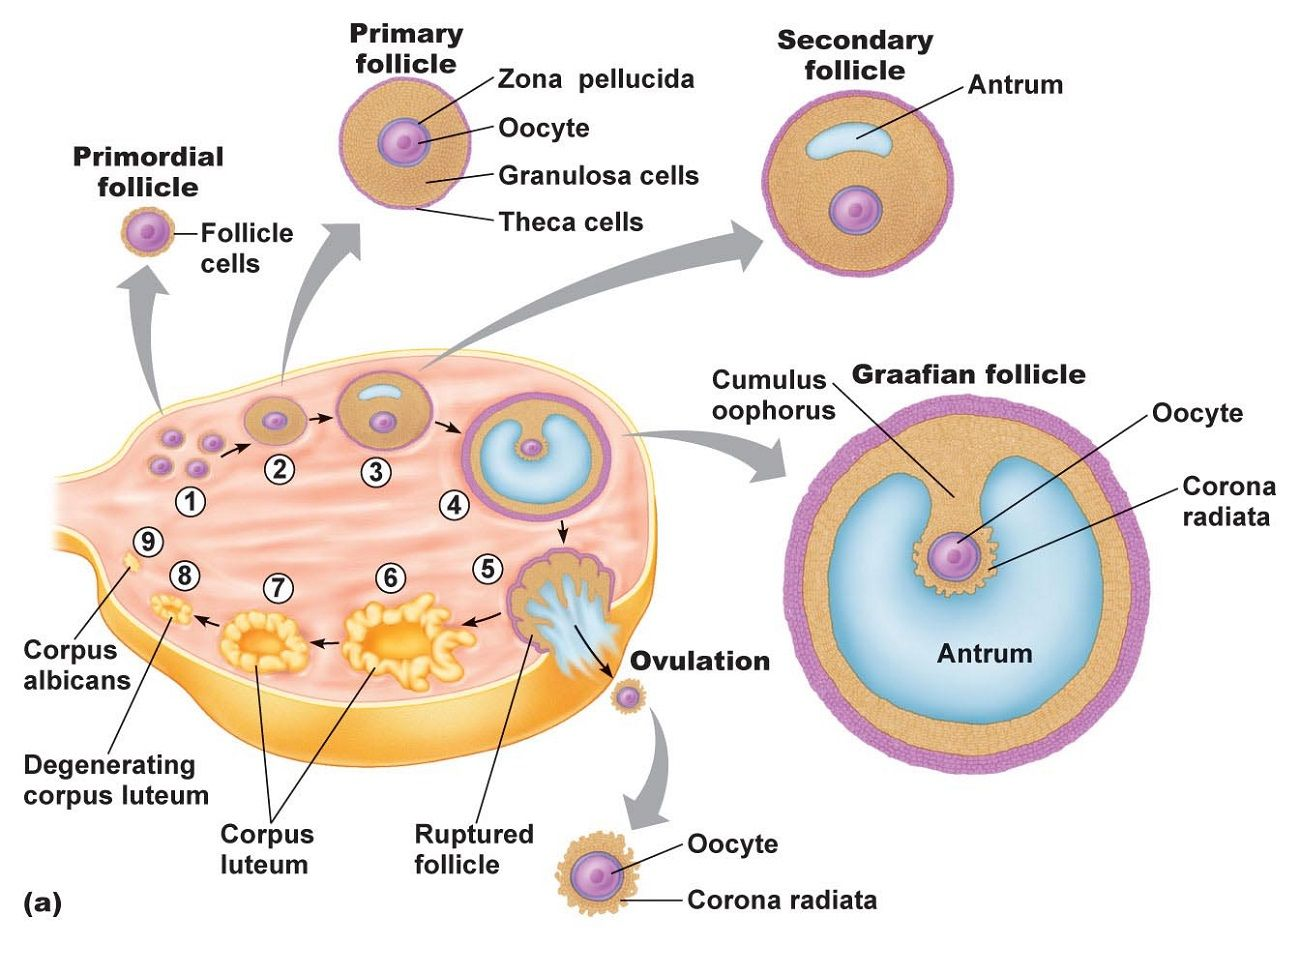 printable ovary diagrams are provided in the list below to show you the  anatomy of the ovary, along with the labels provided in the diagrams